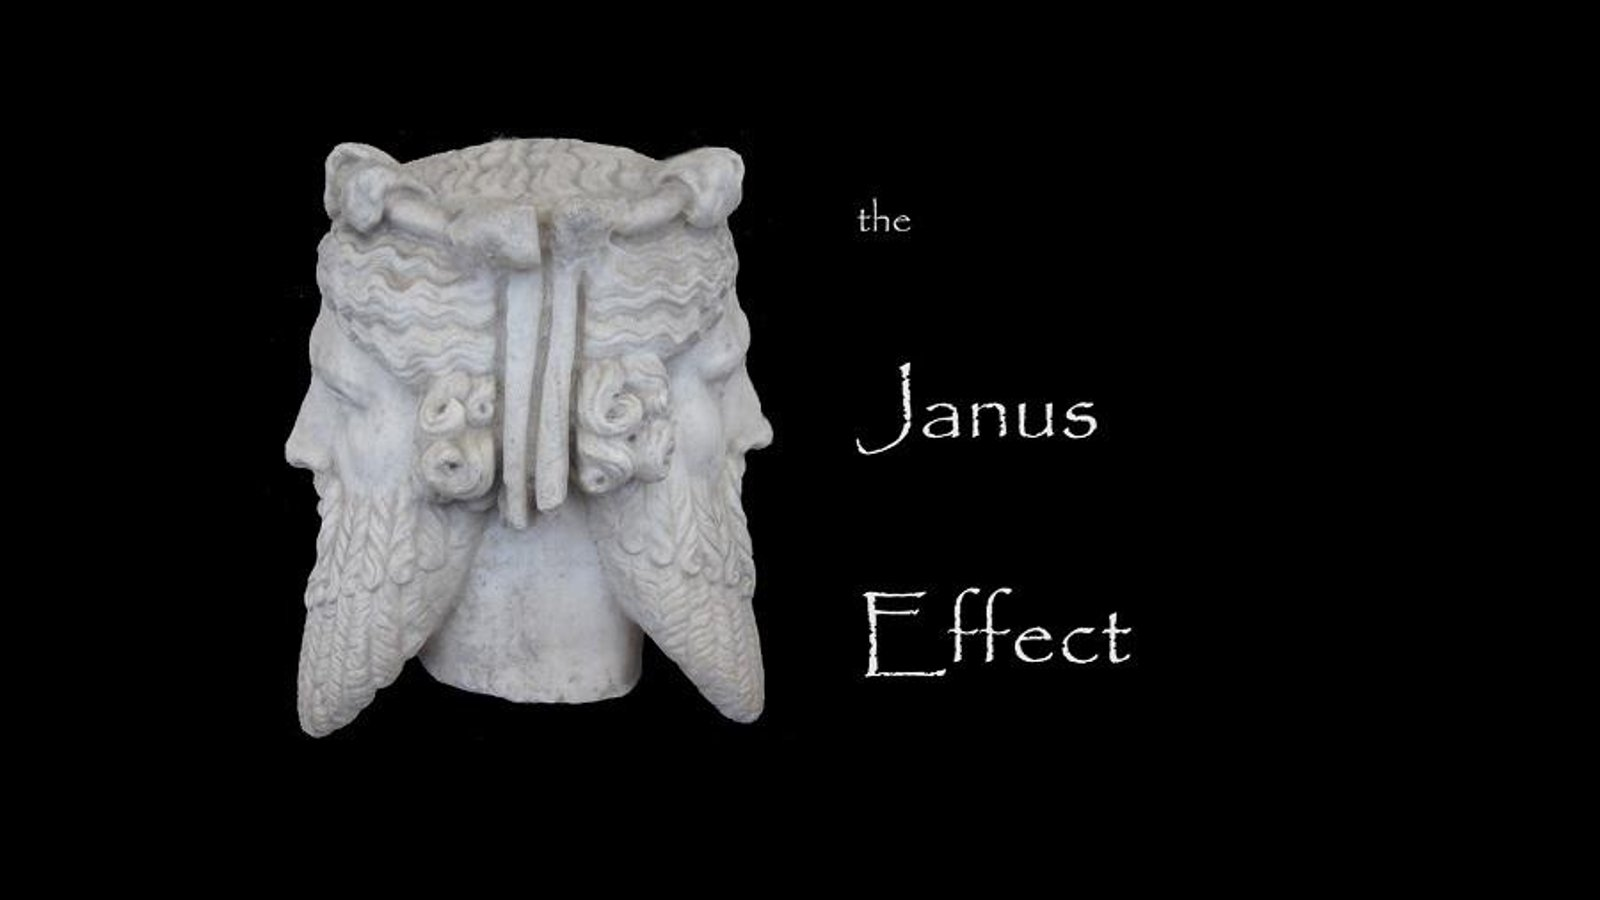 Janus Effect - The Roman God of the Gates in Literature